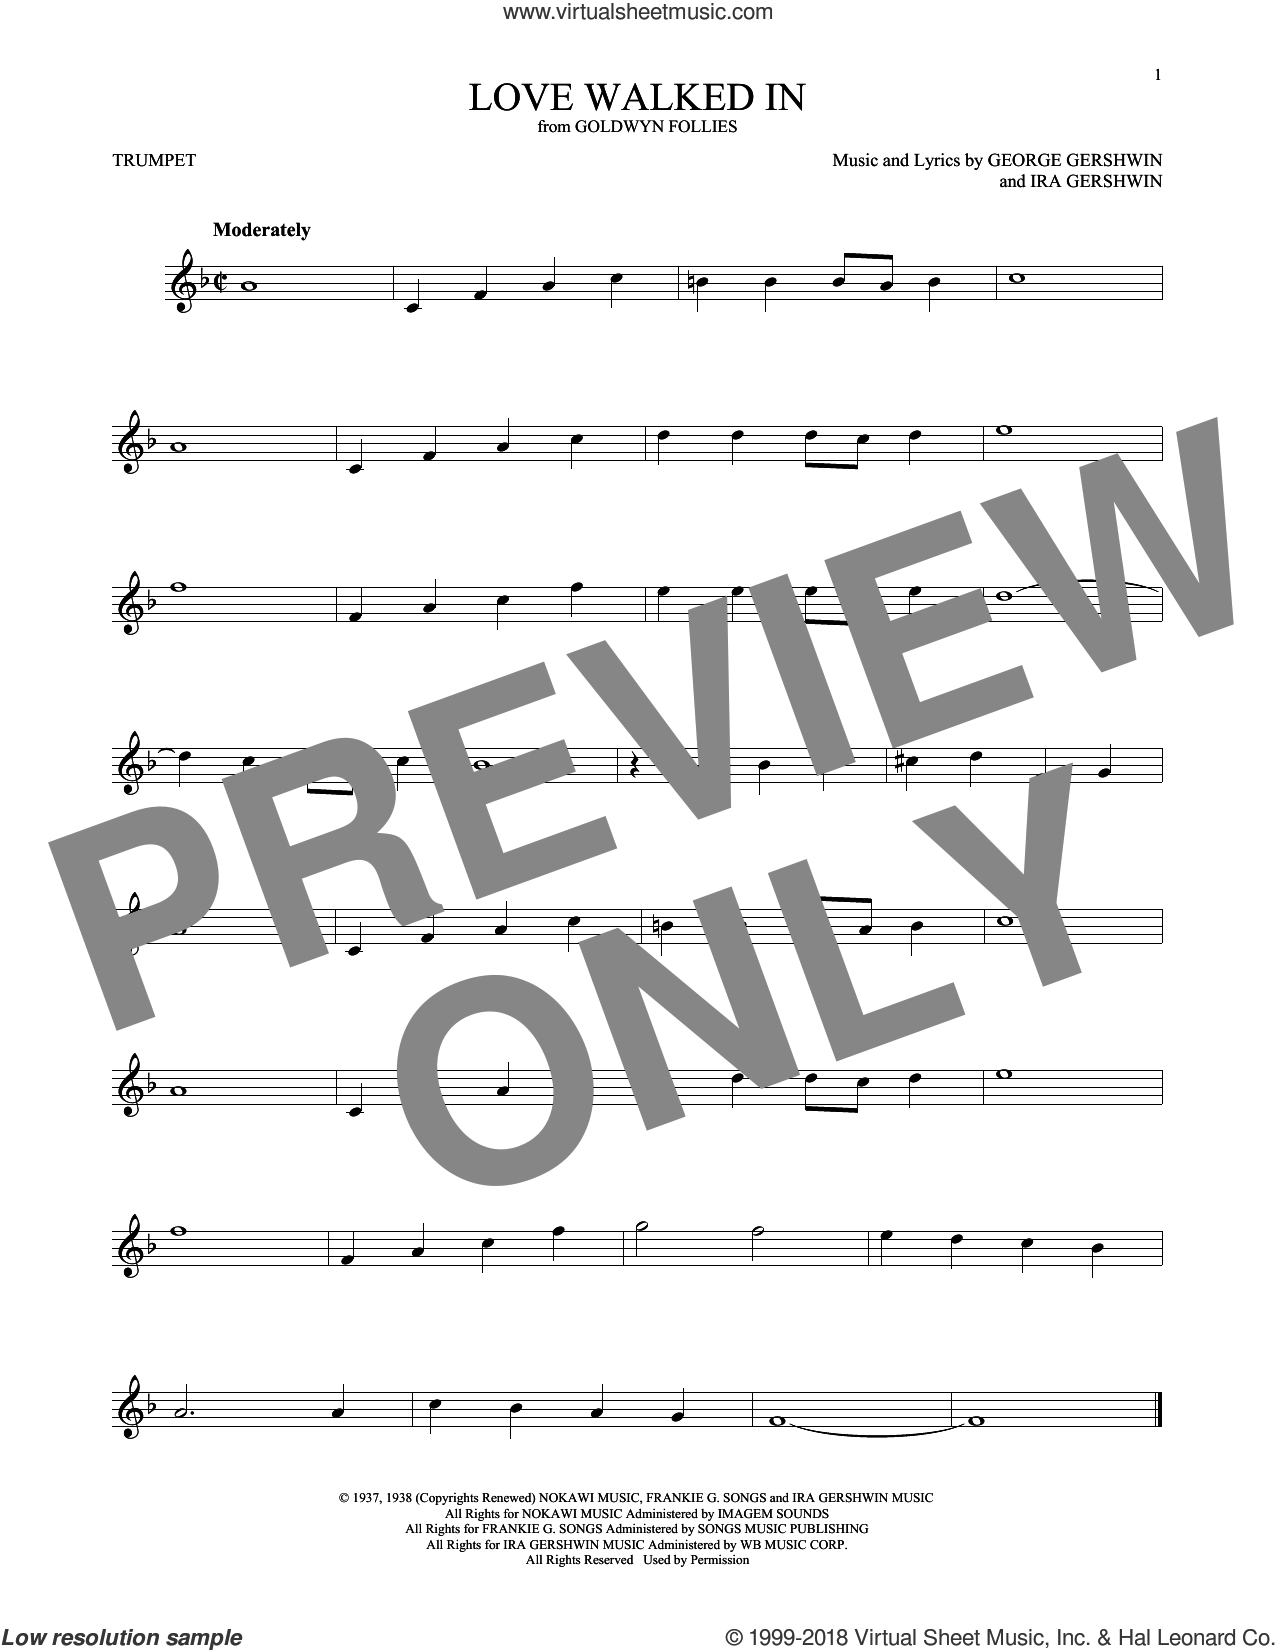 Love Walked In sheet music for trumpet solo by George Gershwin and Ira Gershwin. Score Image Preview.